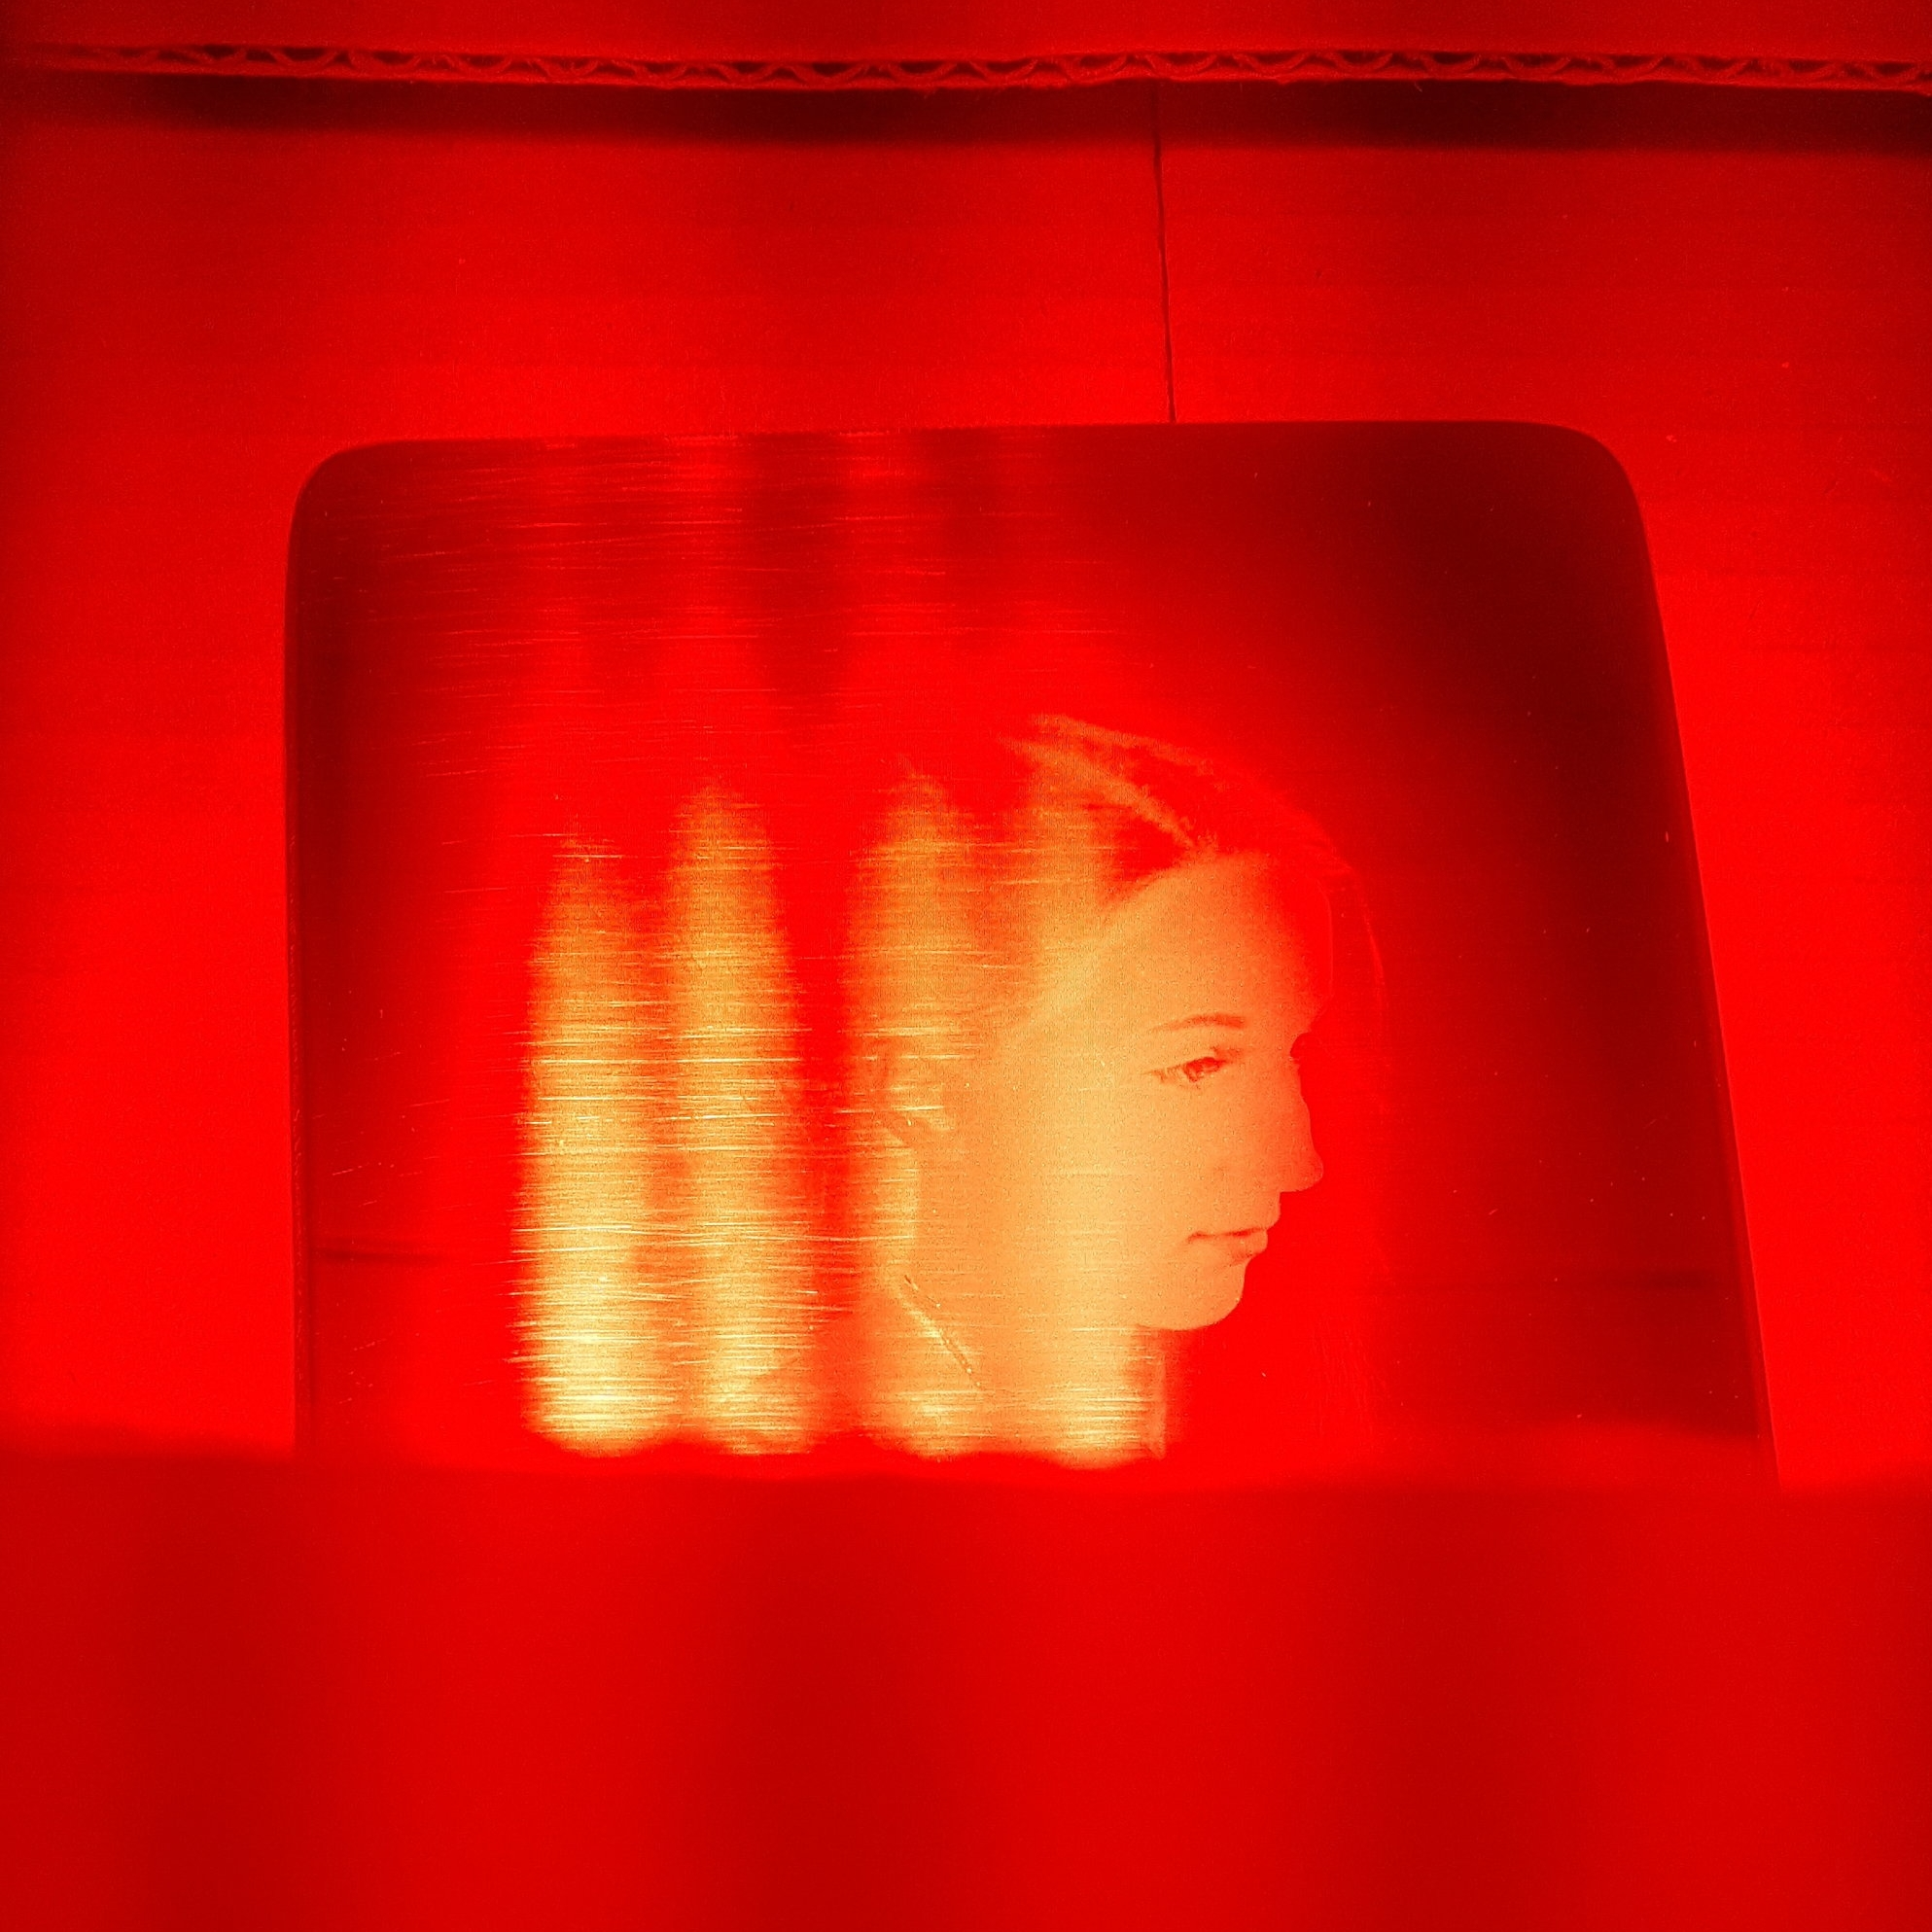 The latent image being developed under a bright LED red safe light.